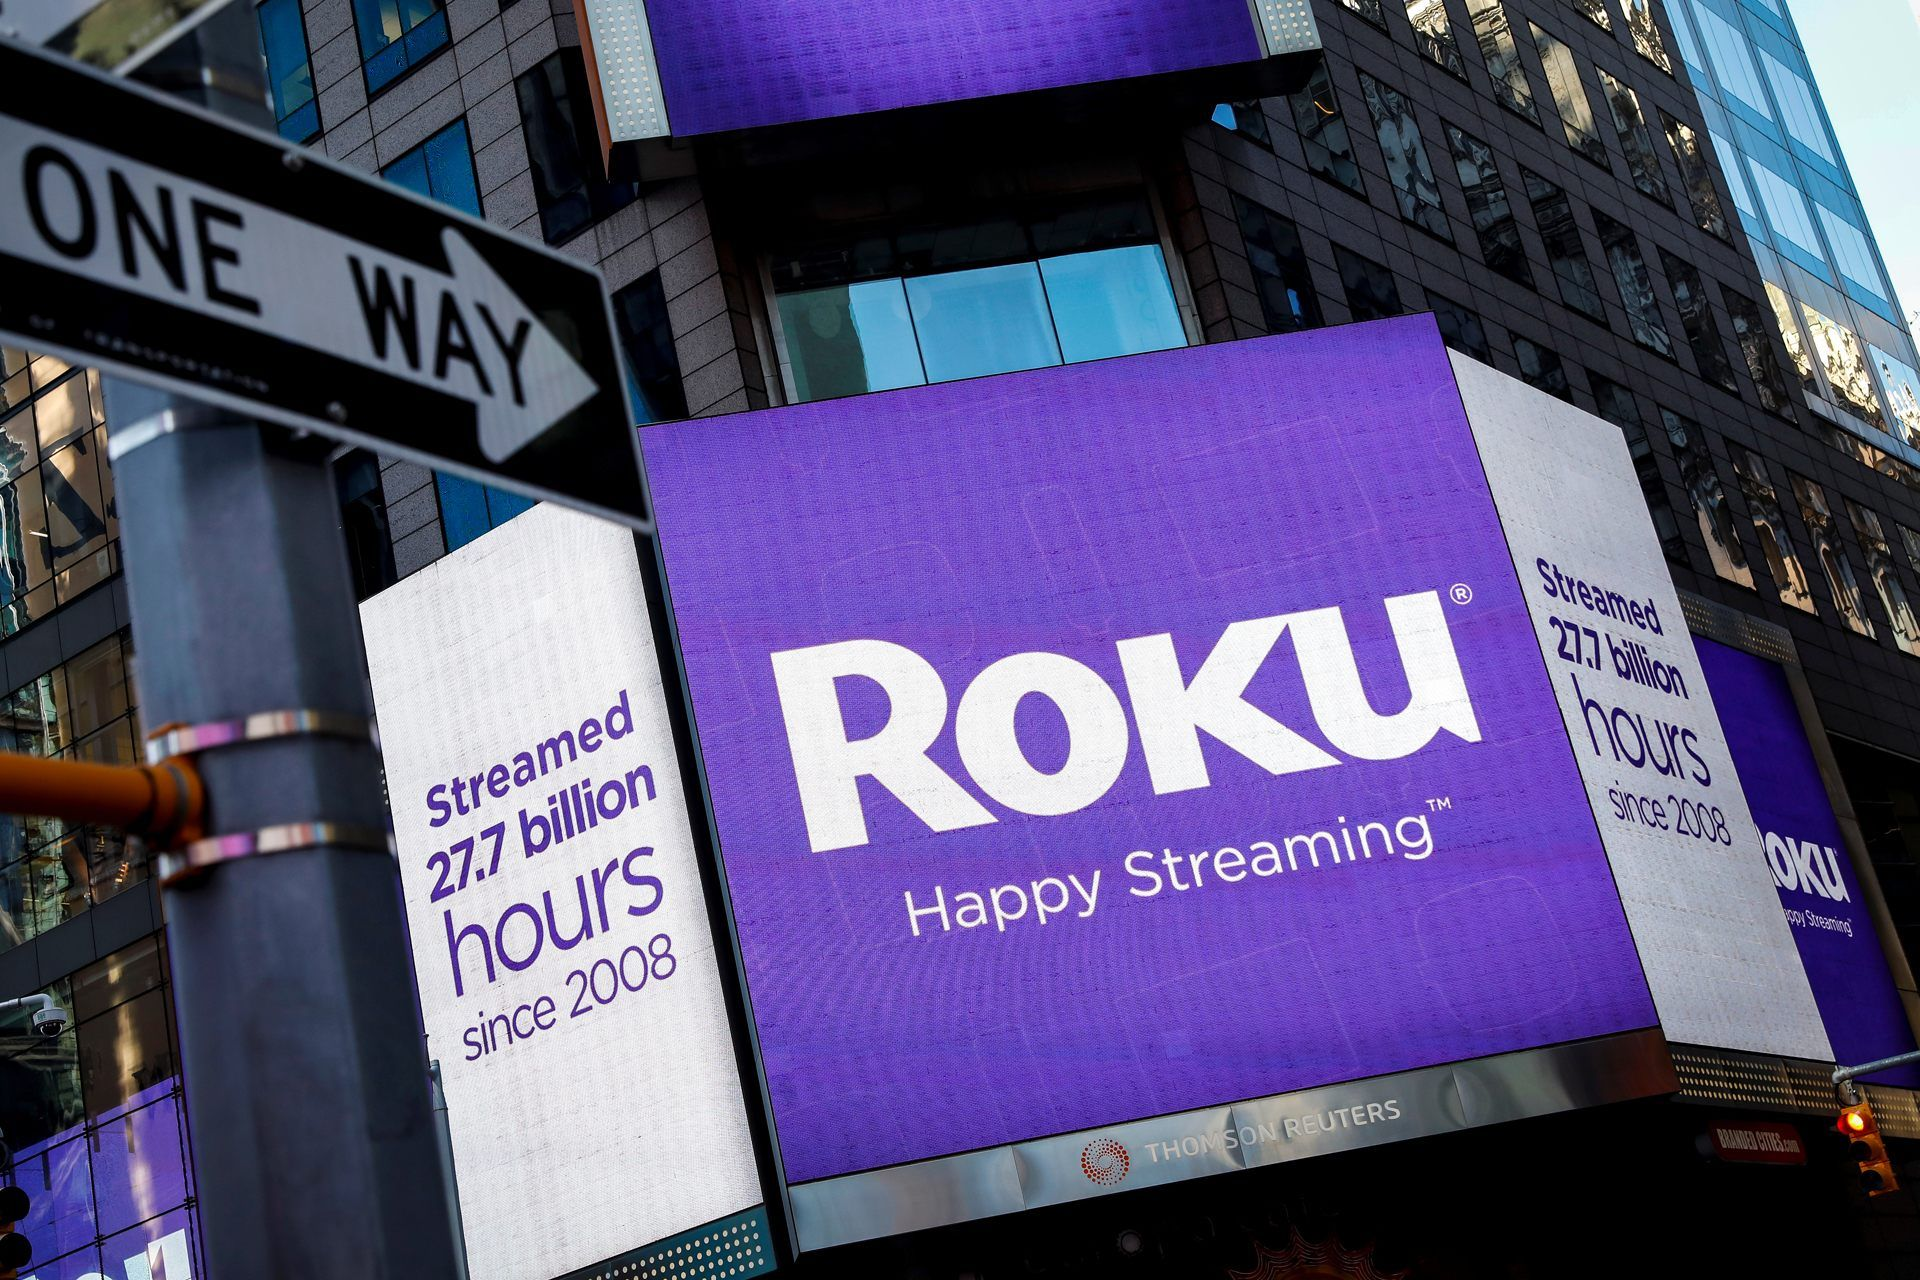 FOX NEWS Roku takes page from Amazon, Hulu with premium